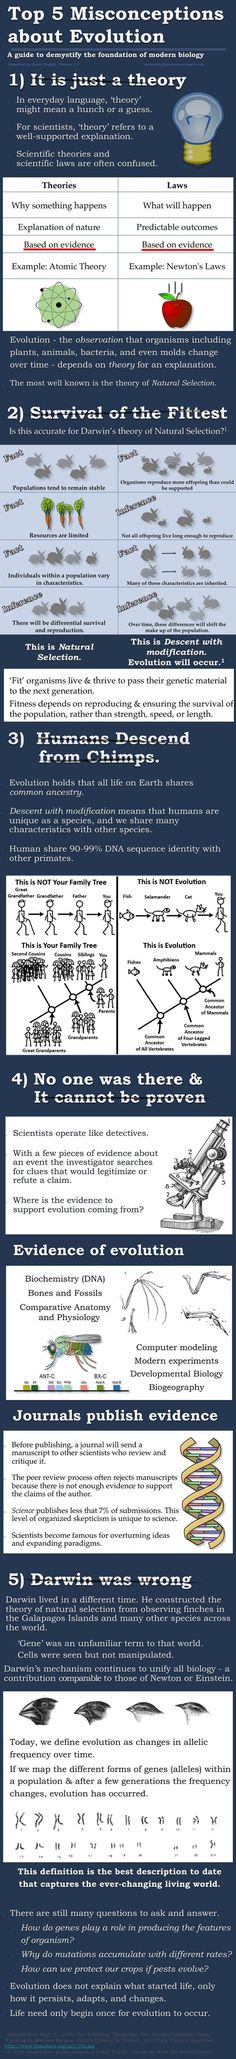 """Top 5 Misconceptions About Evolution - Every time I hear someone say,""""It's just a theory"""" about evolution, I automatically think less of their intelligence..."""